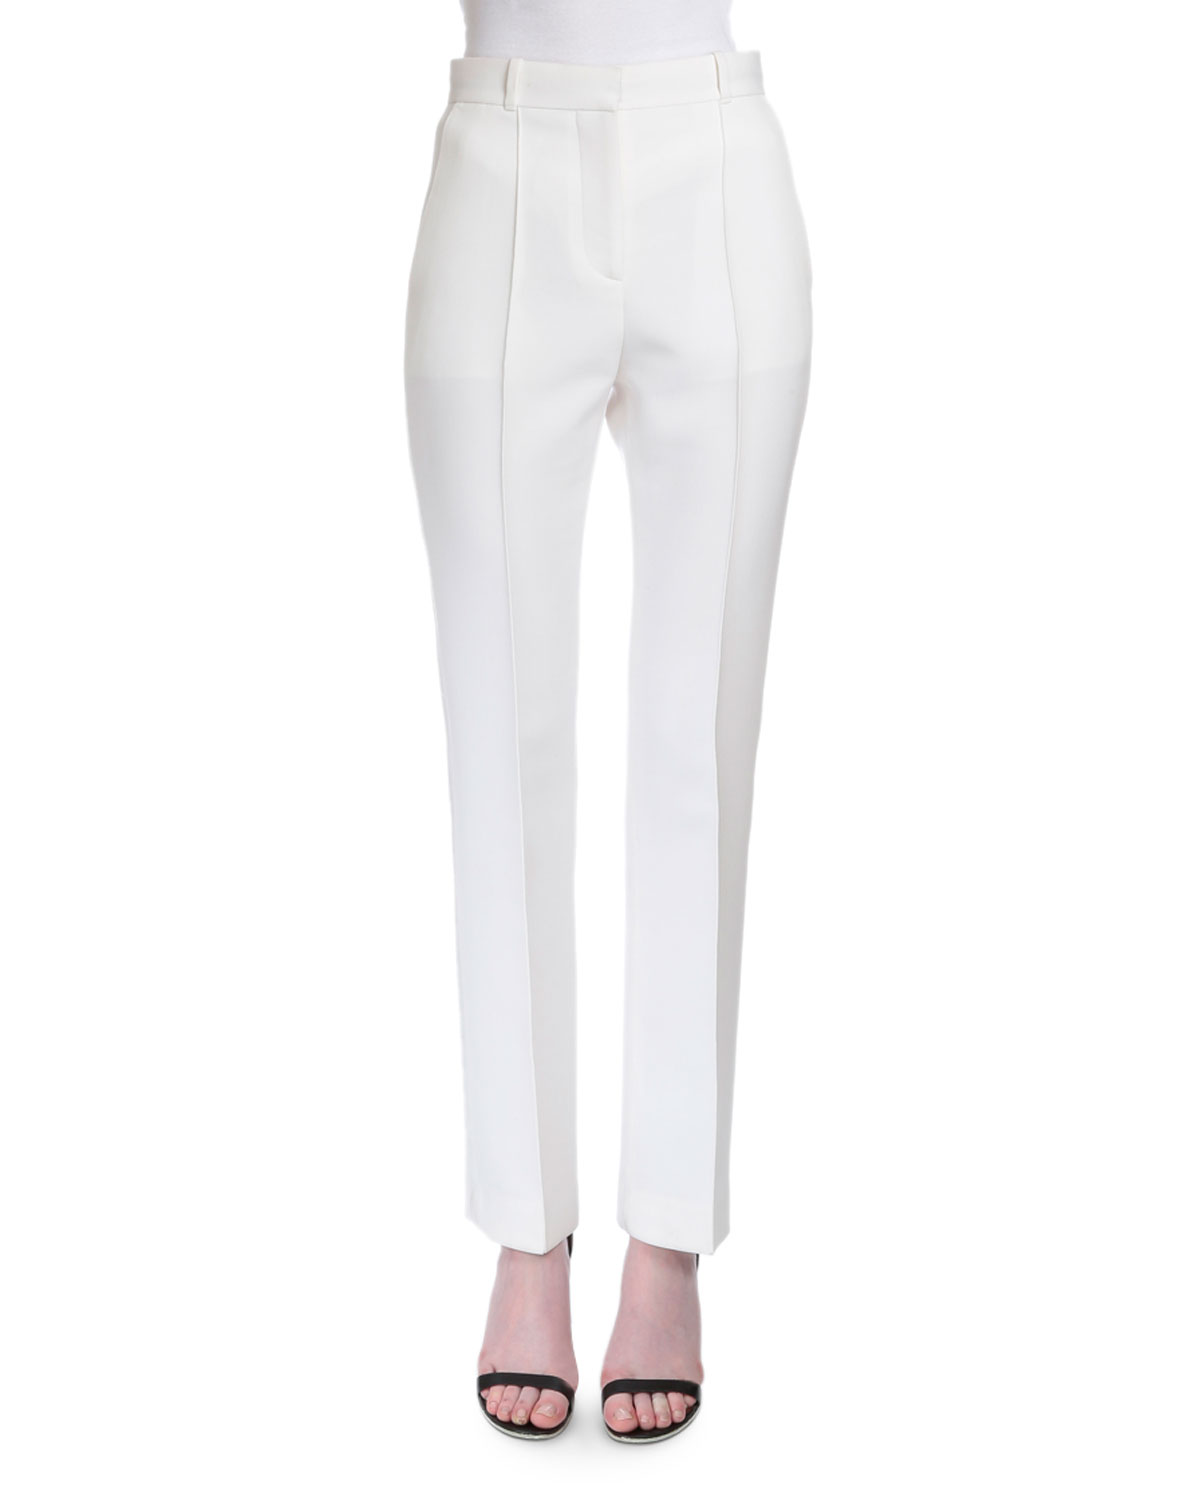 Givenchy Reversible-Seam Skinny Trousers, White